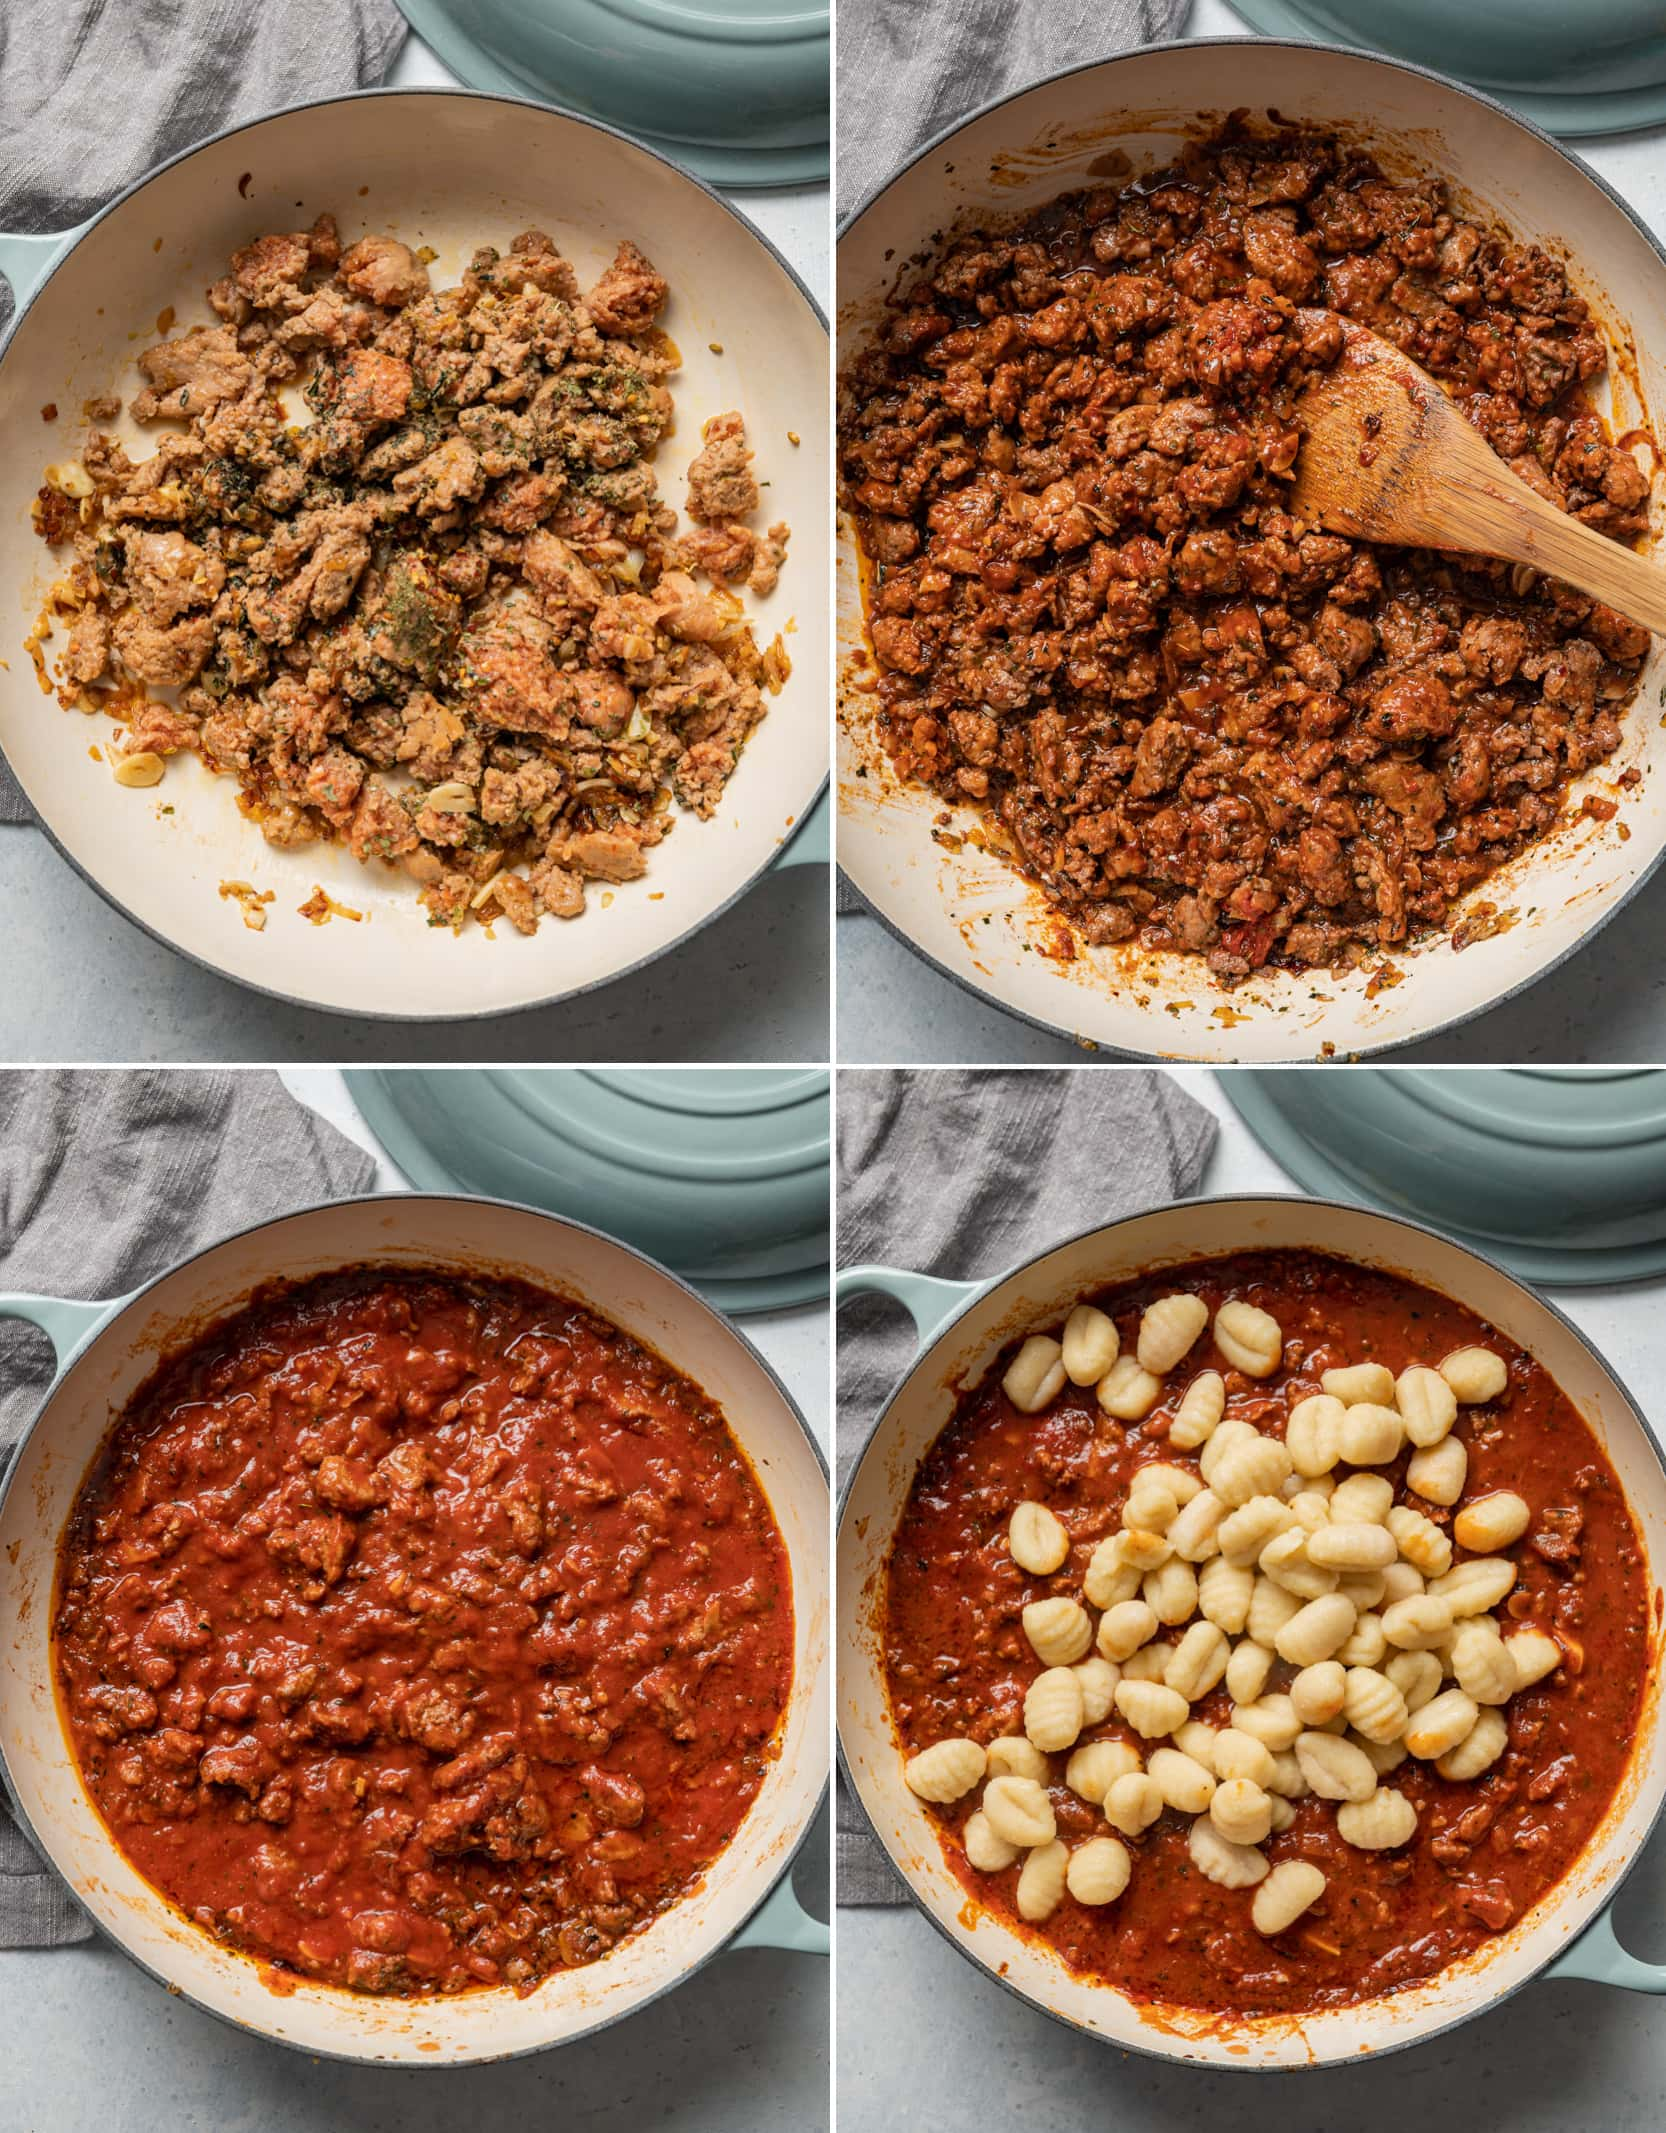 process collage of stages of Italian sausage cooking, with sauces added, with gnocchi on top